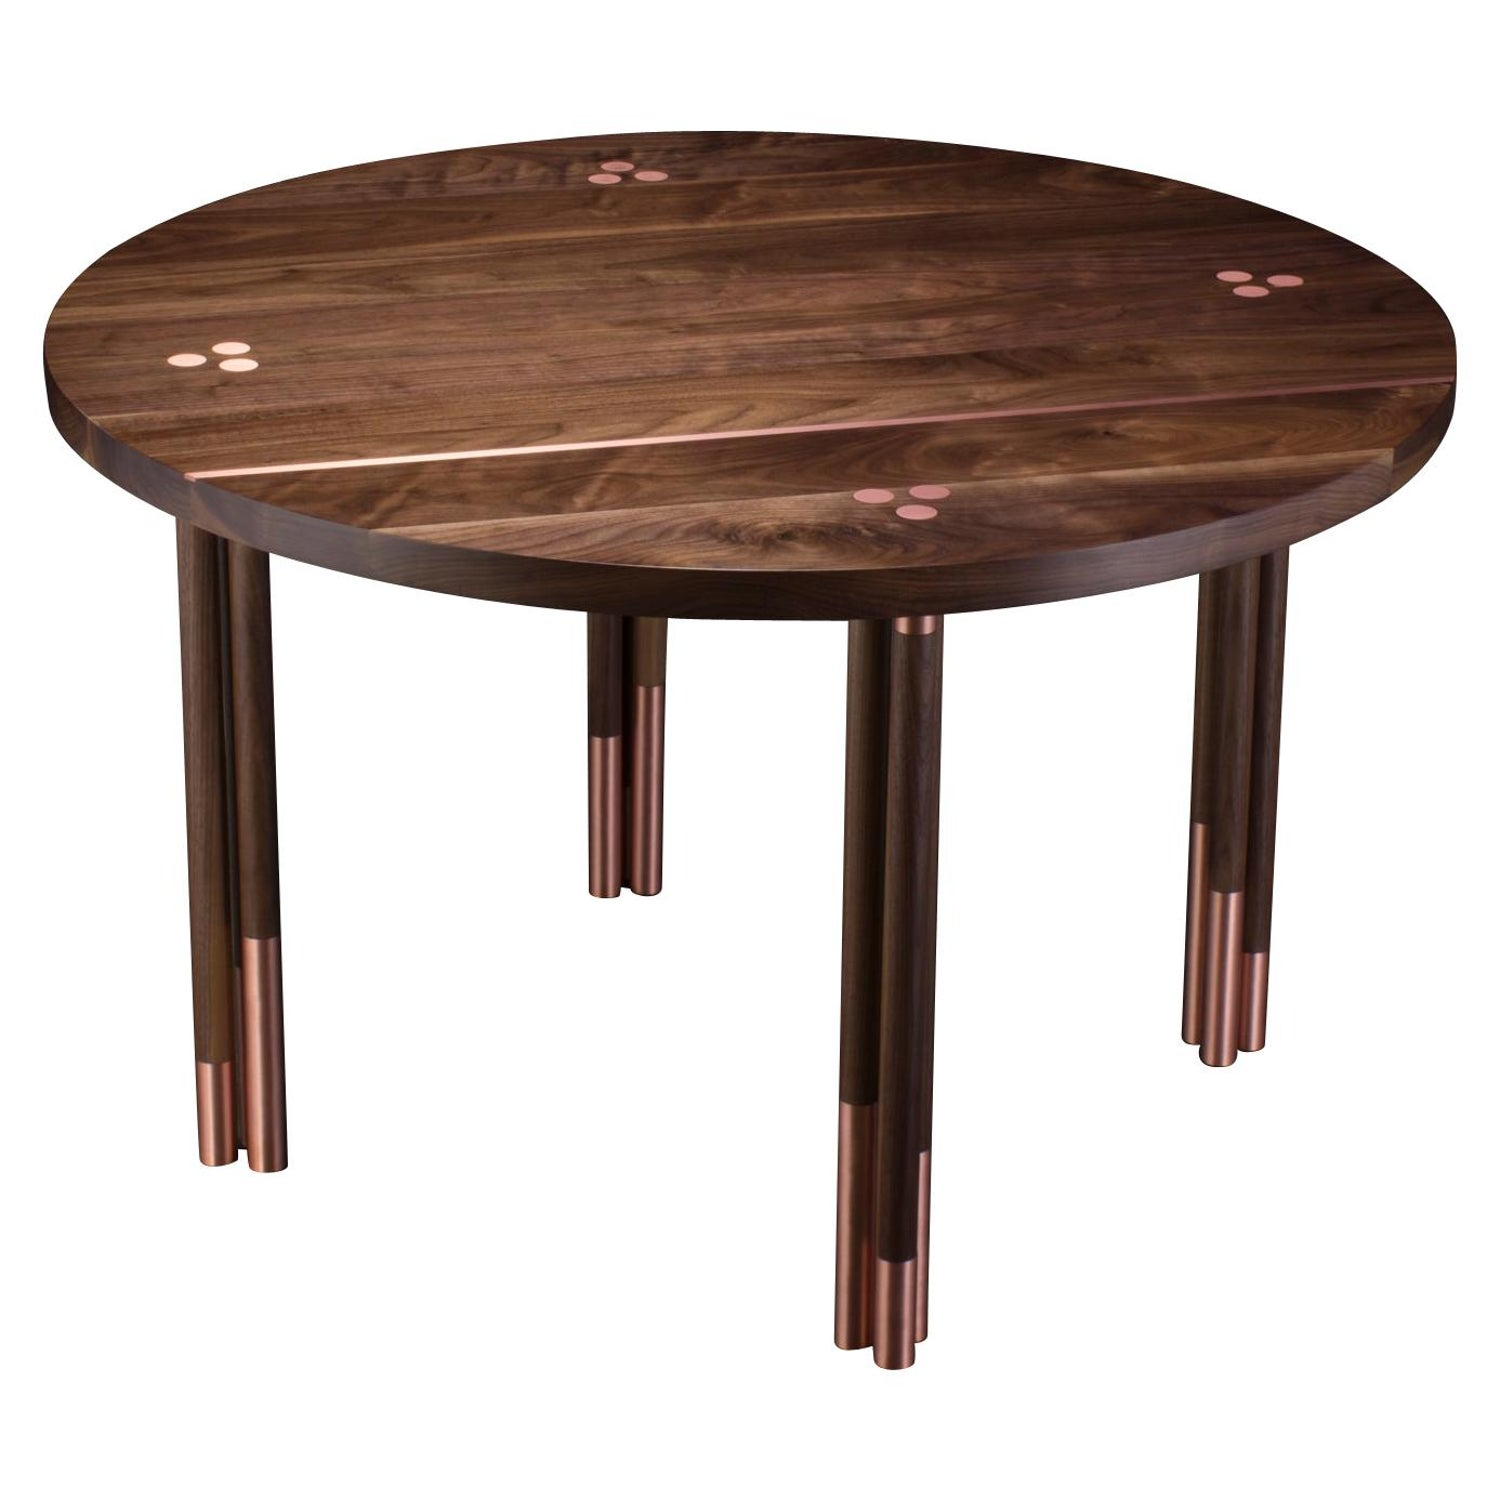 Walnut Circular Dining Table With Copper Inlay Canfield Dining Table For Sale At 1stdibs